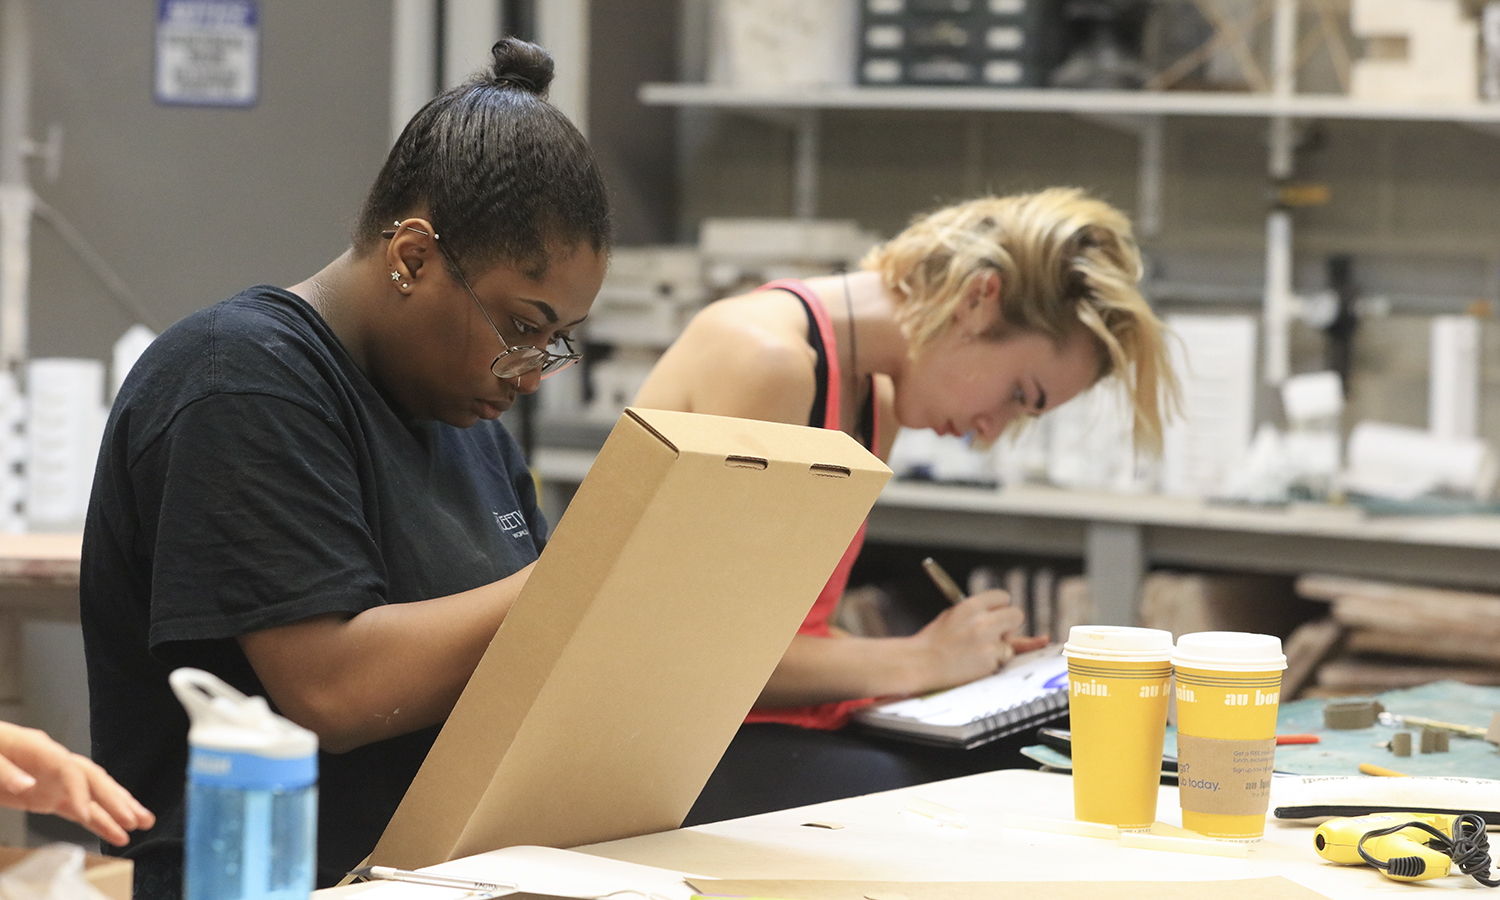 Morgan Perry '20 and Grace Hammett '20 work on projects for their Into to Sculpture class in the Elliott Art Center.